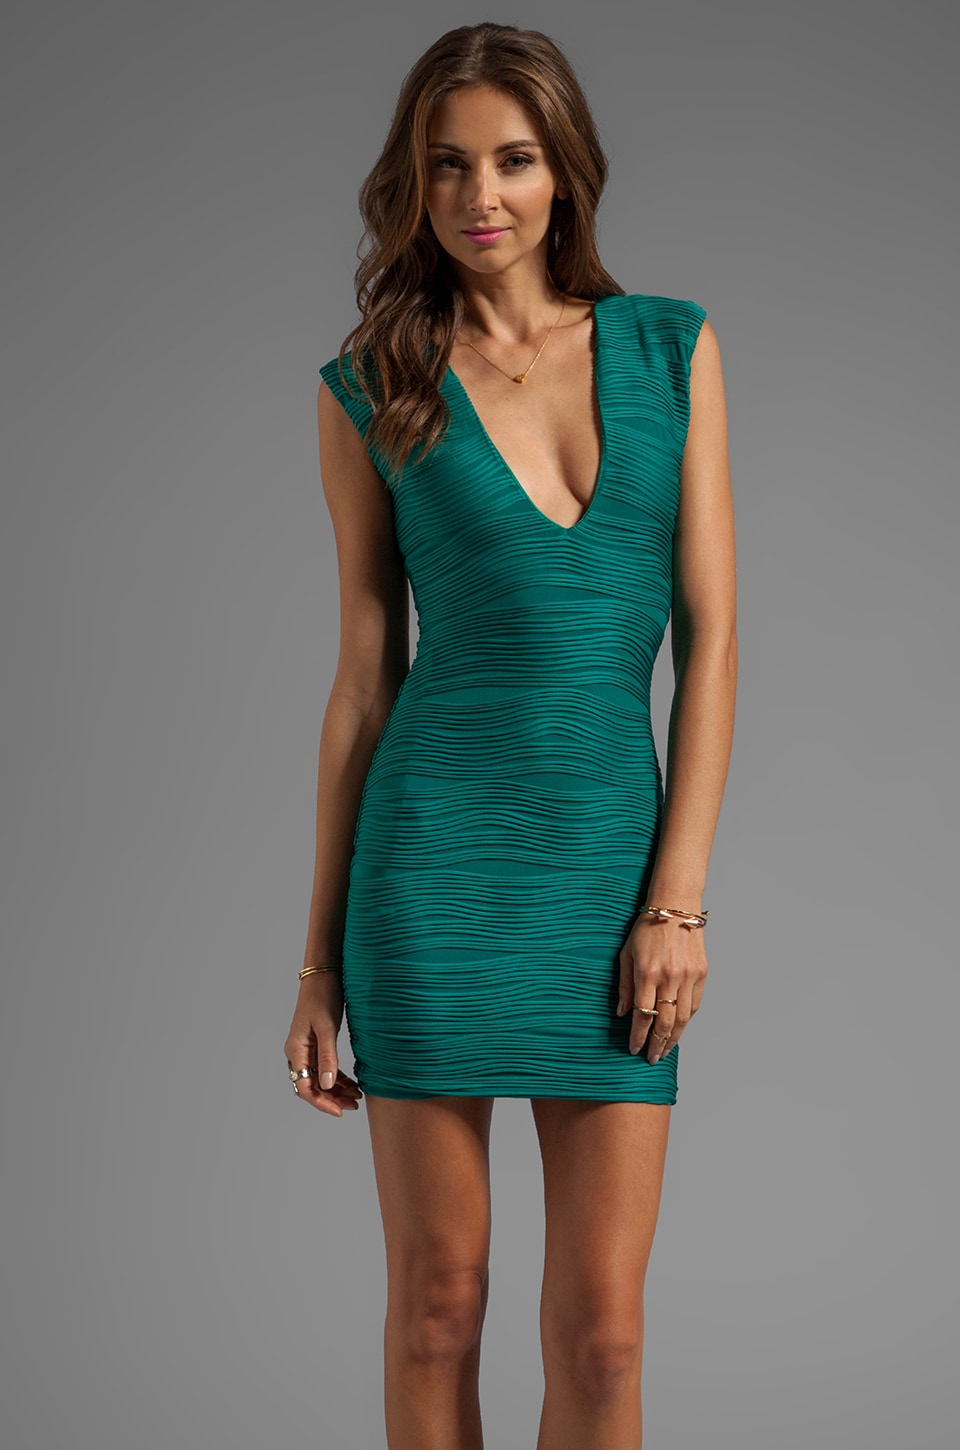 BEC&BRIDGE Wisteria Reversible Dress in Jade